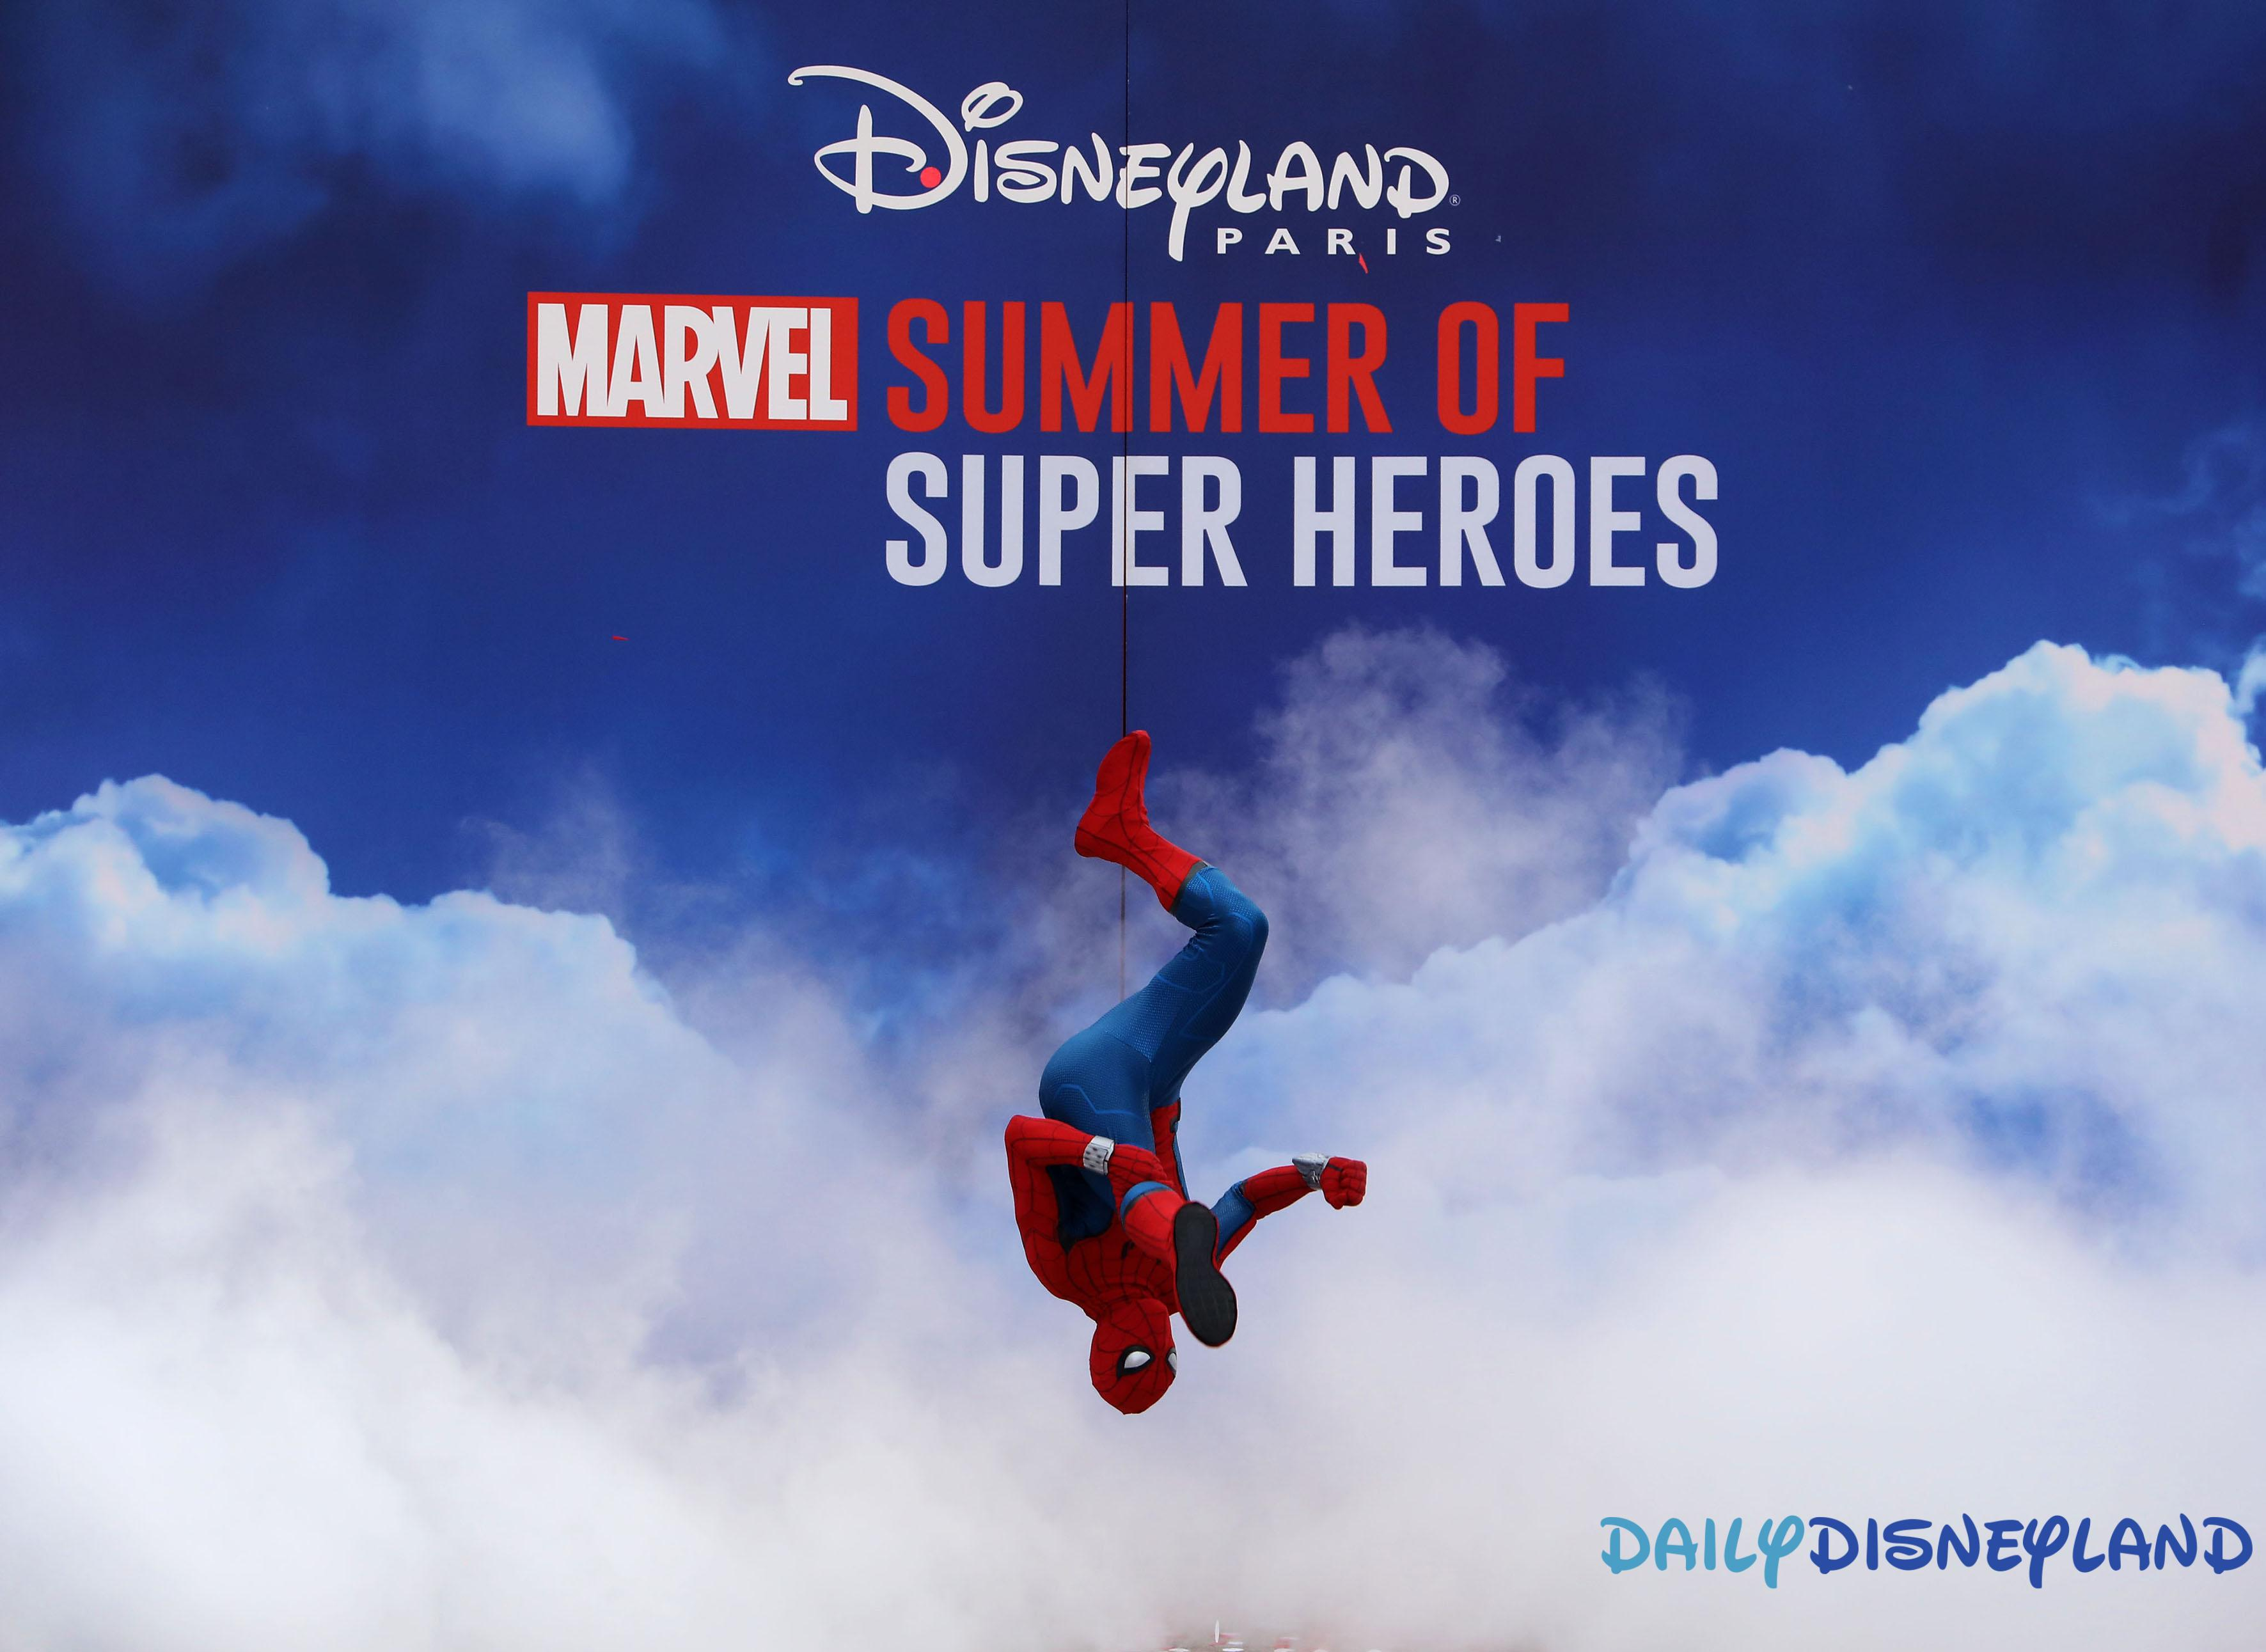 ete super héros marvel disneyland paris avis 2018